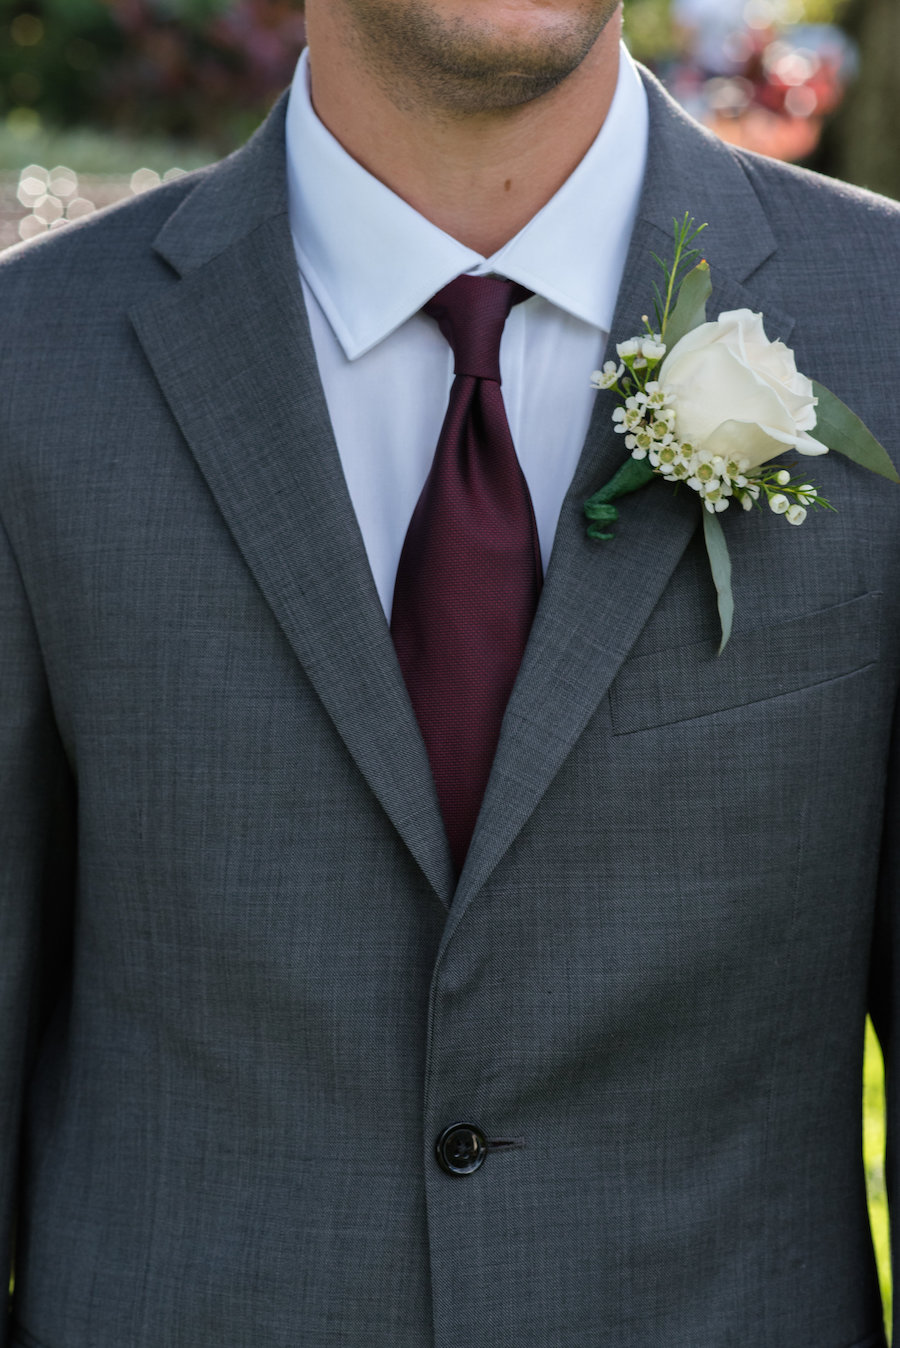 Groom Portrait with Grey Suit, Blue Shirt, Bordeaux Tie and White Rose with Babys Breath and Greenery Boutonniere